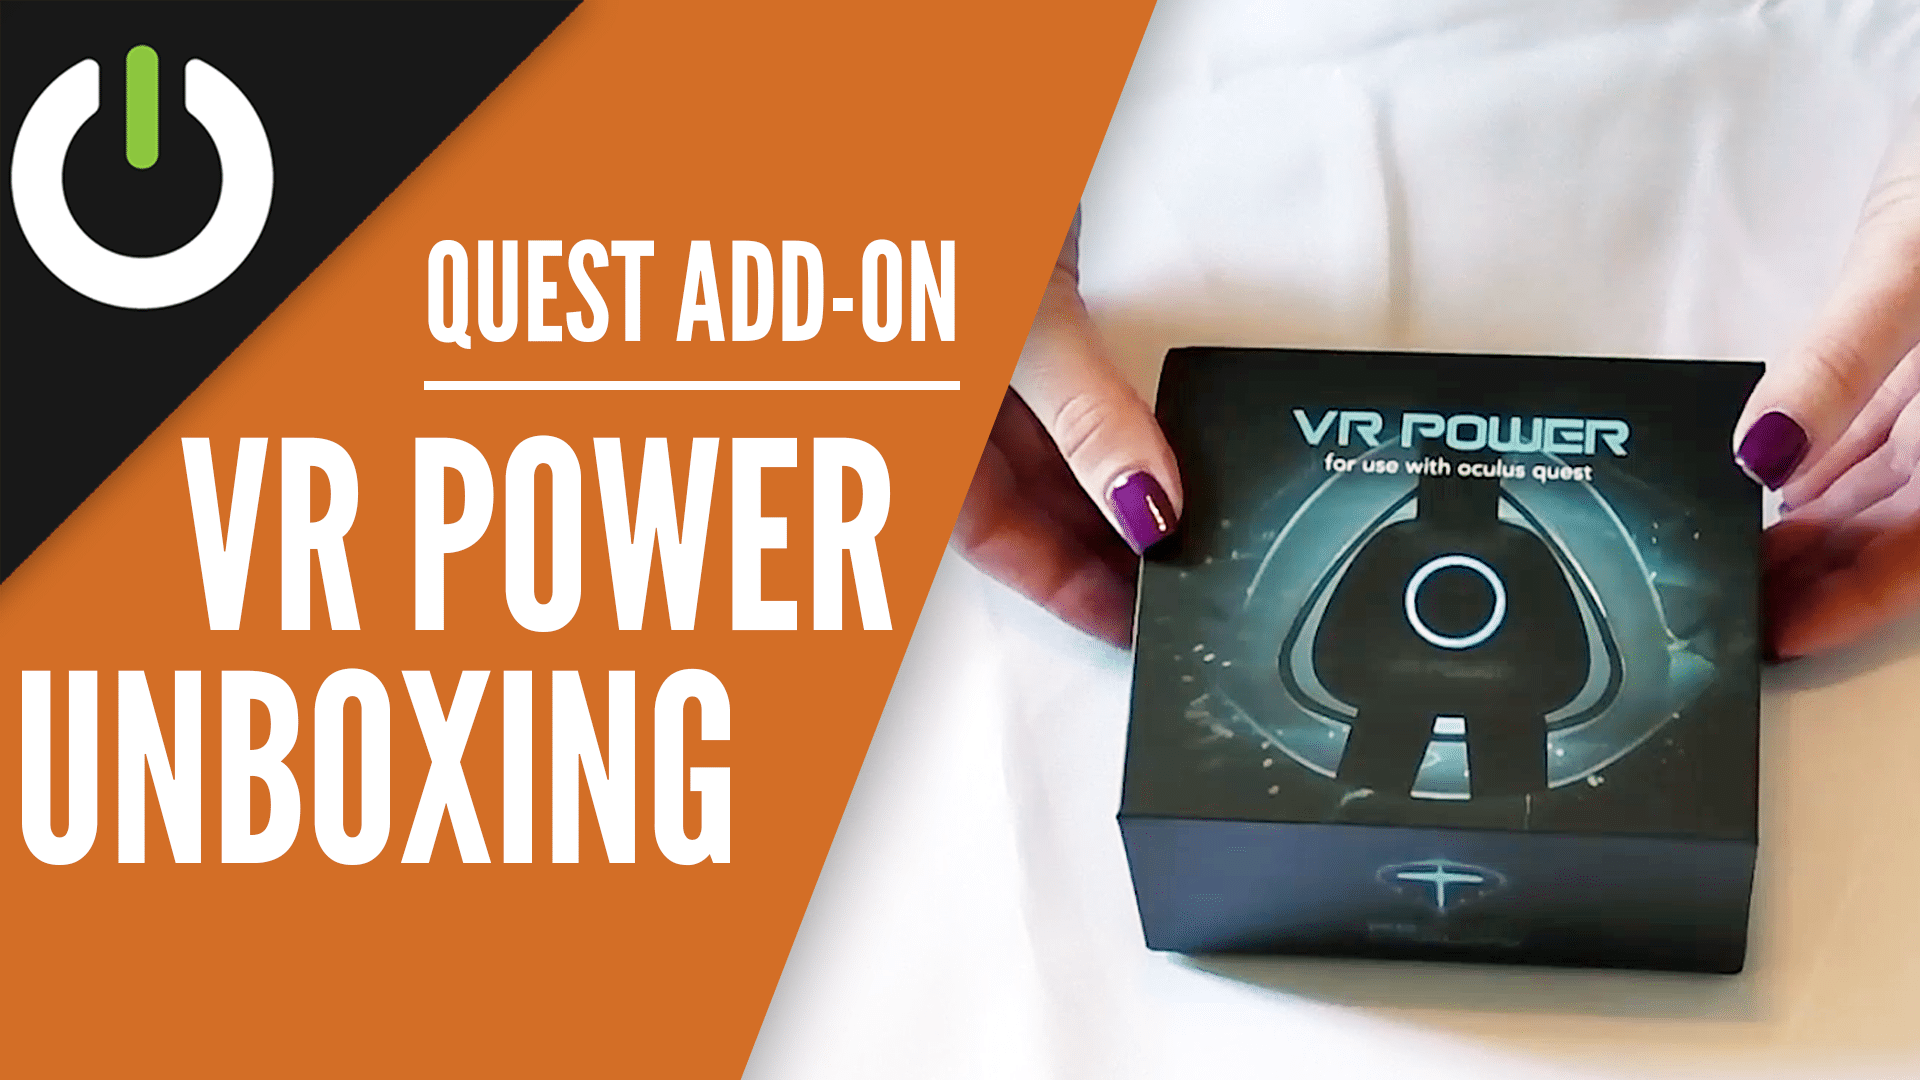 vr power unboxing